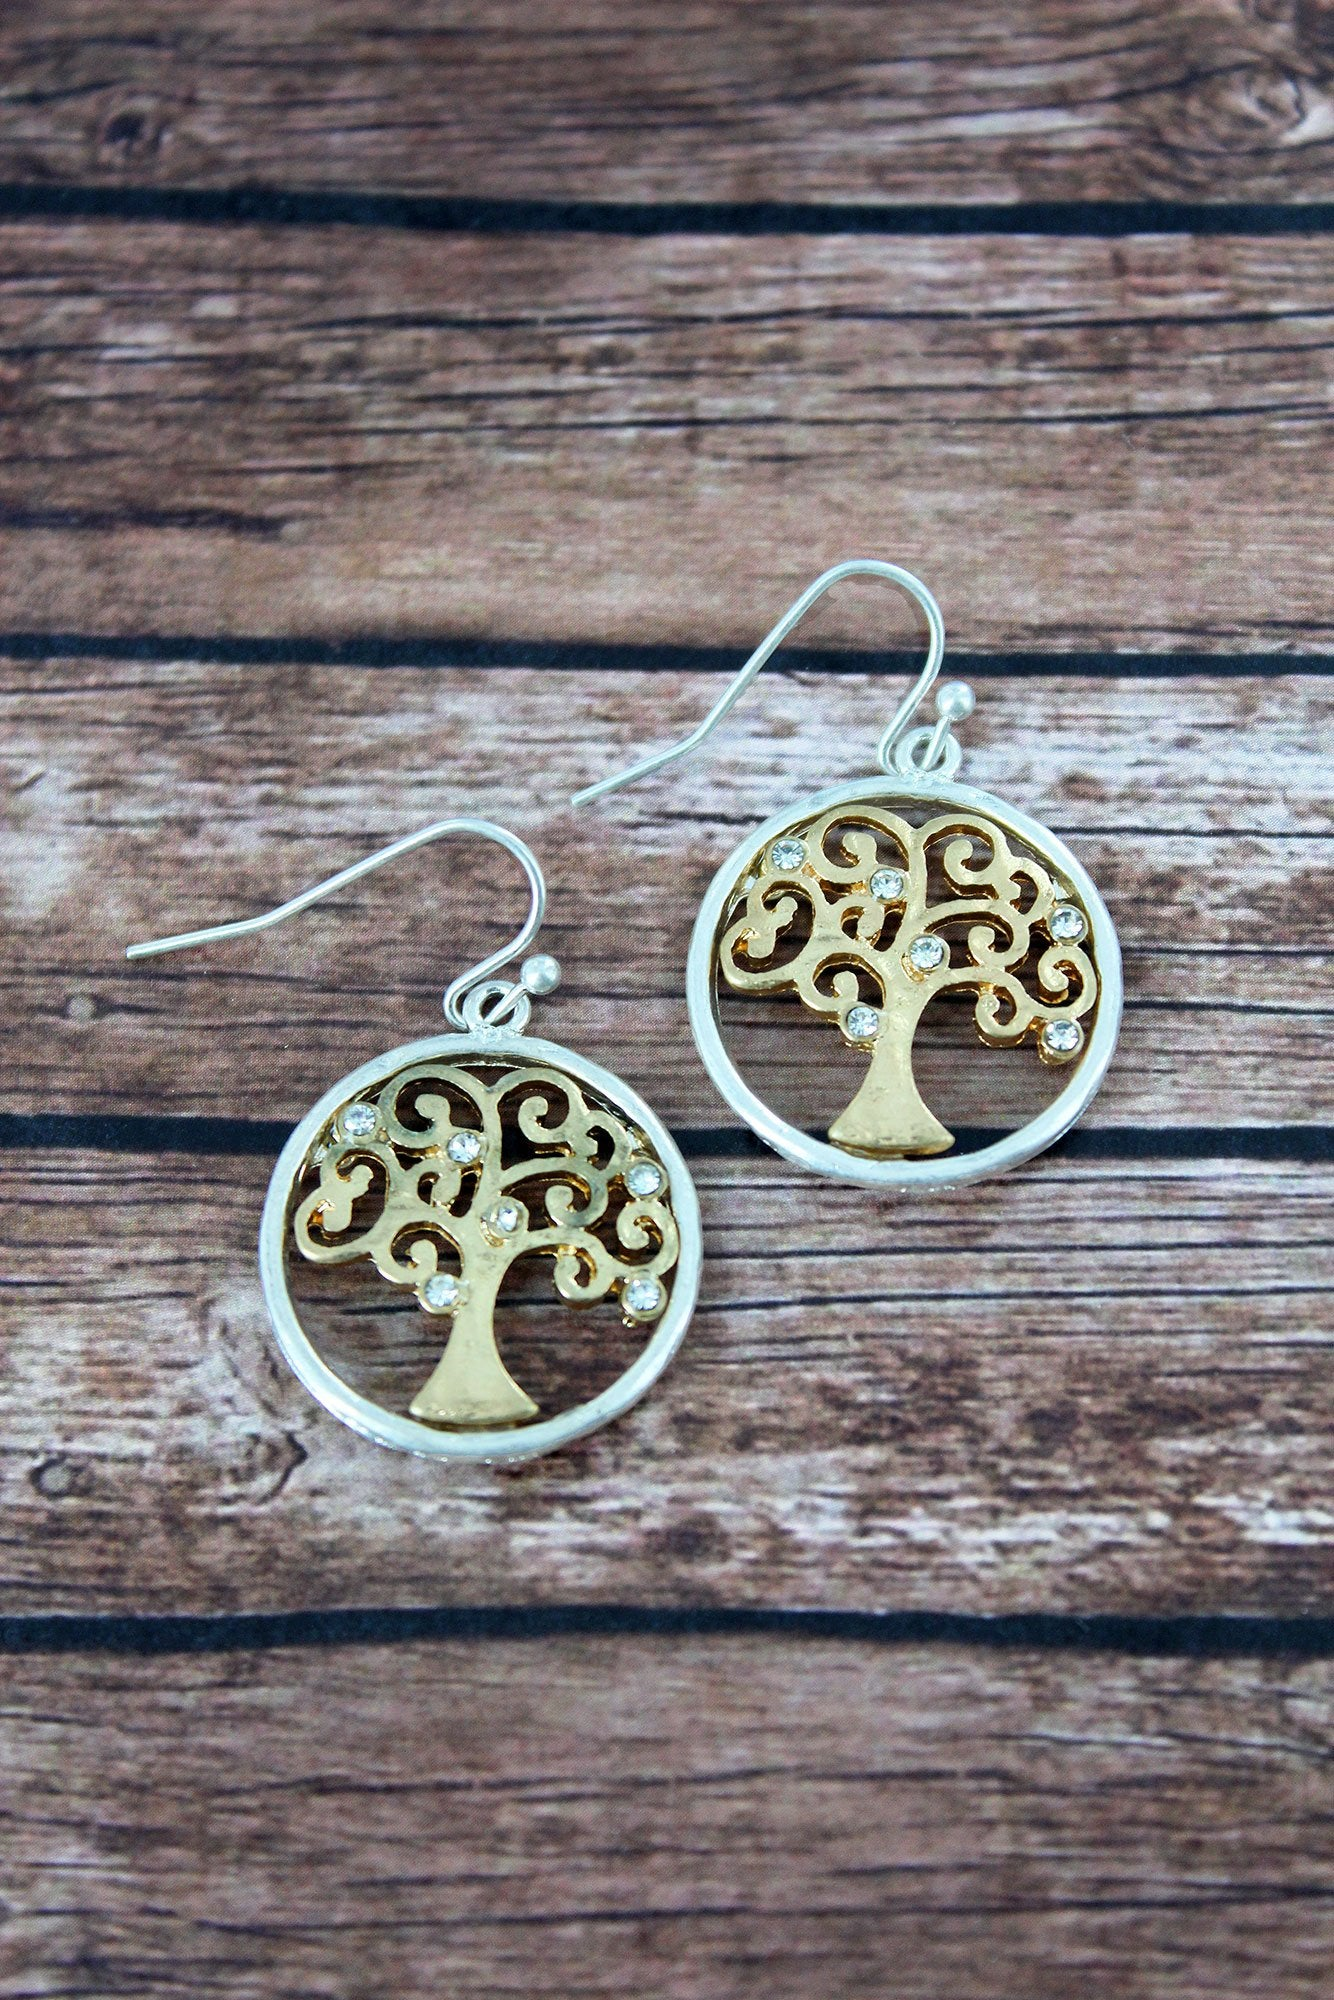 Crave Worn Two-Tone and Crystal Tree of Life Earrings